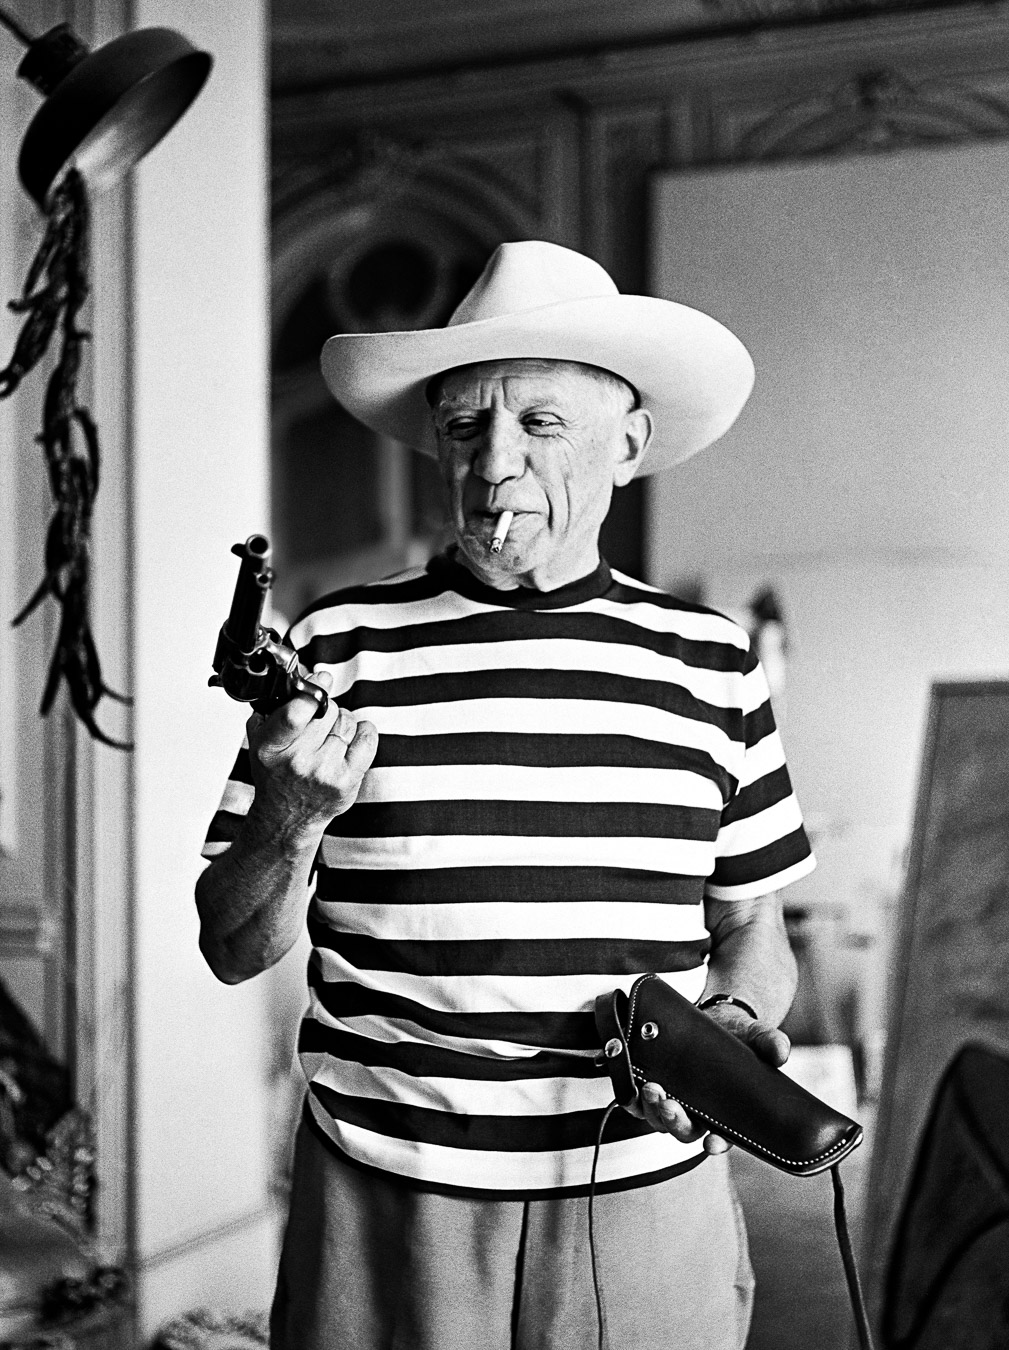 Picasso with the revolver and hat of Gary Cooper, 1959 Canson fine art print, mounted, printed 2013 110x139cm, Edition of 7, Also available: Edition of 10, 75x92cm